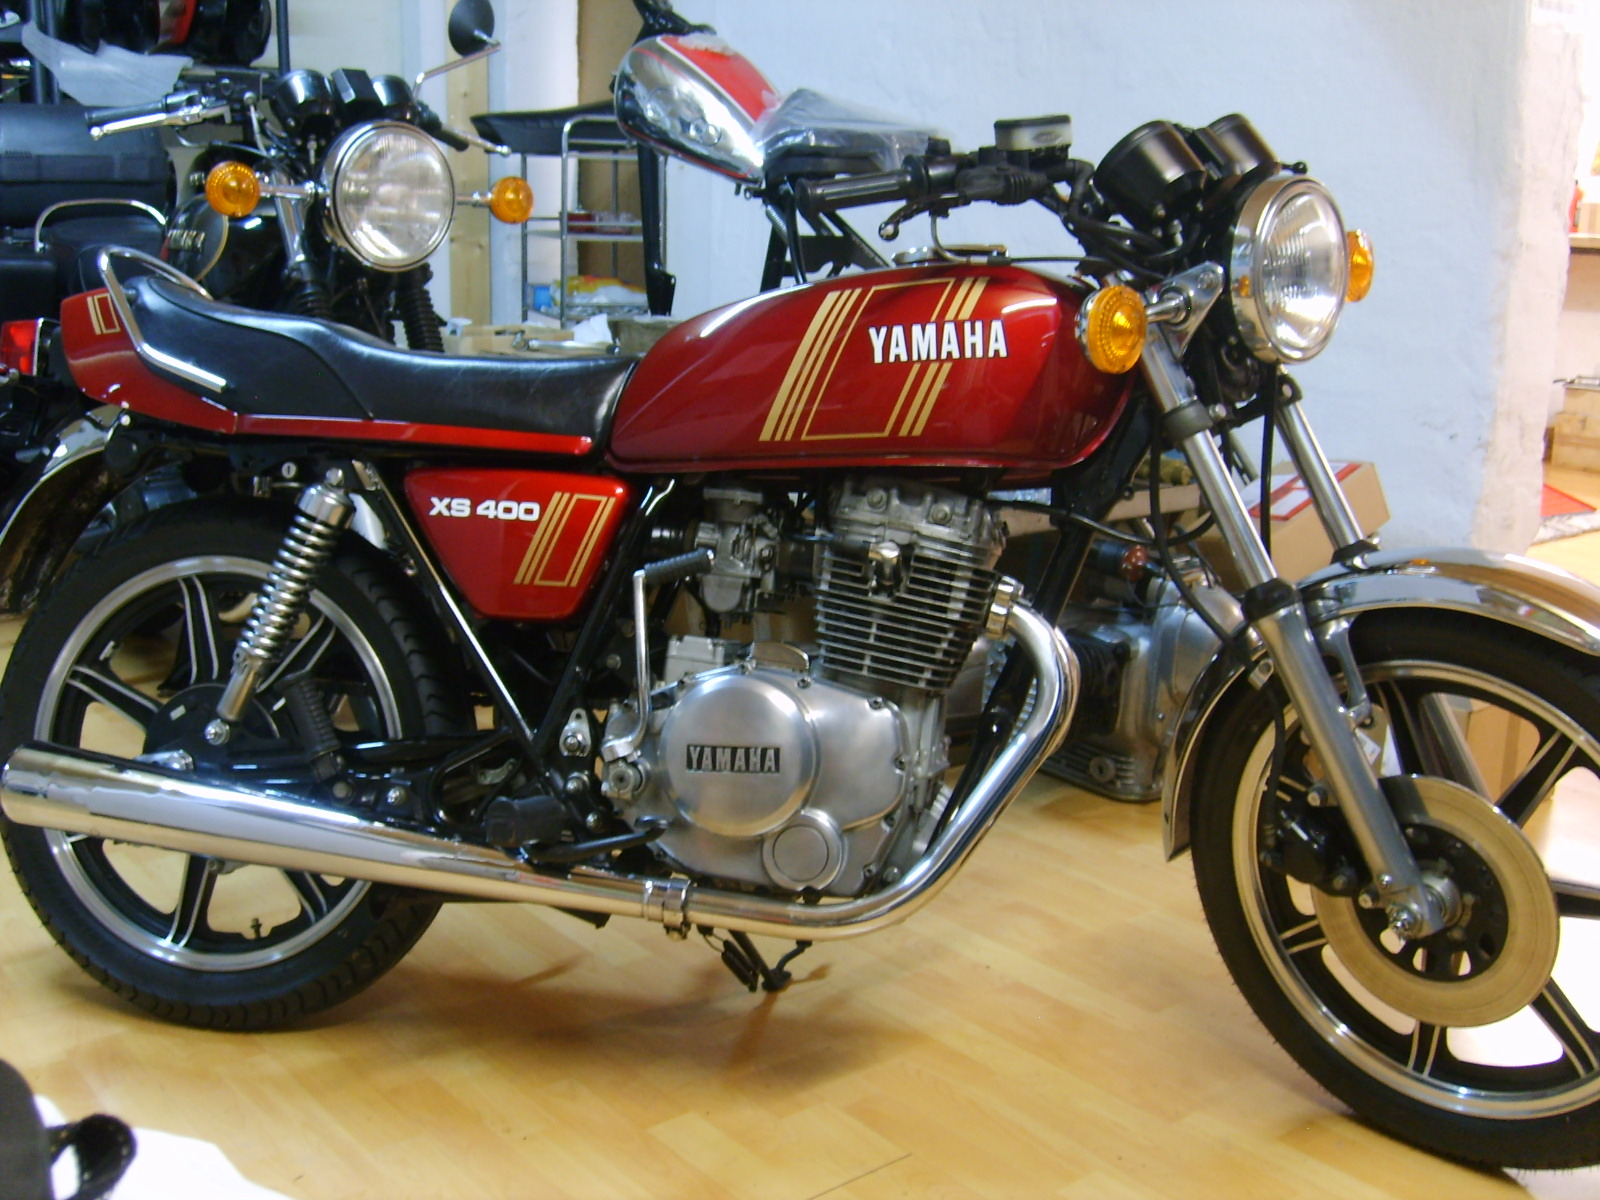 restauraci n yamaha xs400 de 1979 p gina 2 forocoches. Black Bedroom Furniture Sets. Home Design Ideas